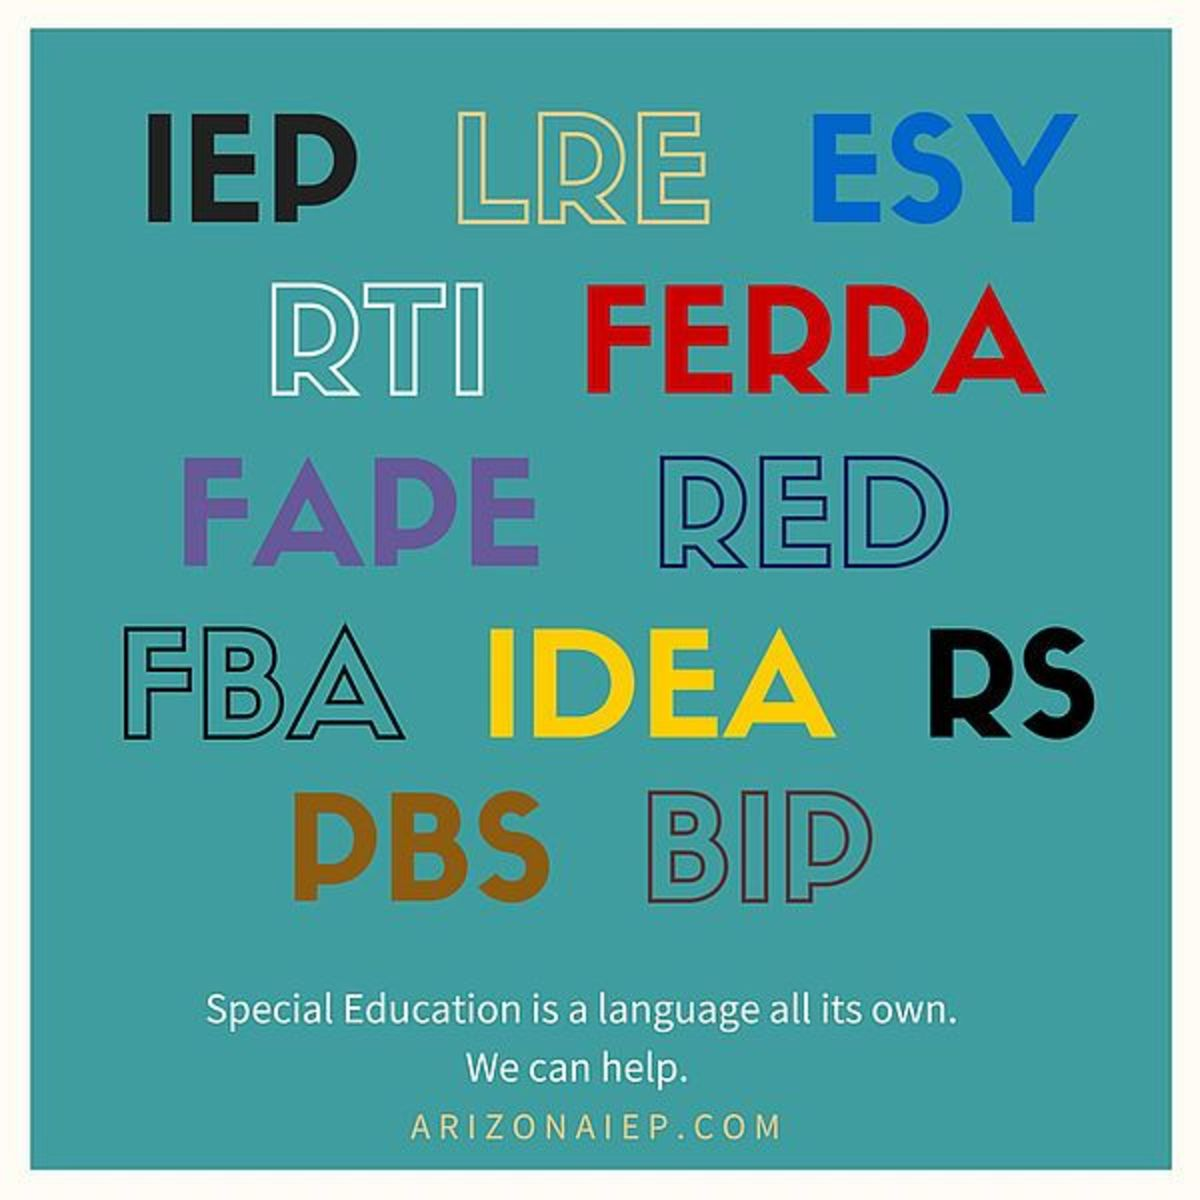 Unraveling the Acronyms: Meanings Behind Special Education Terminology